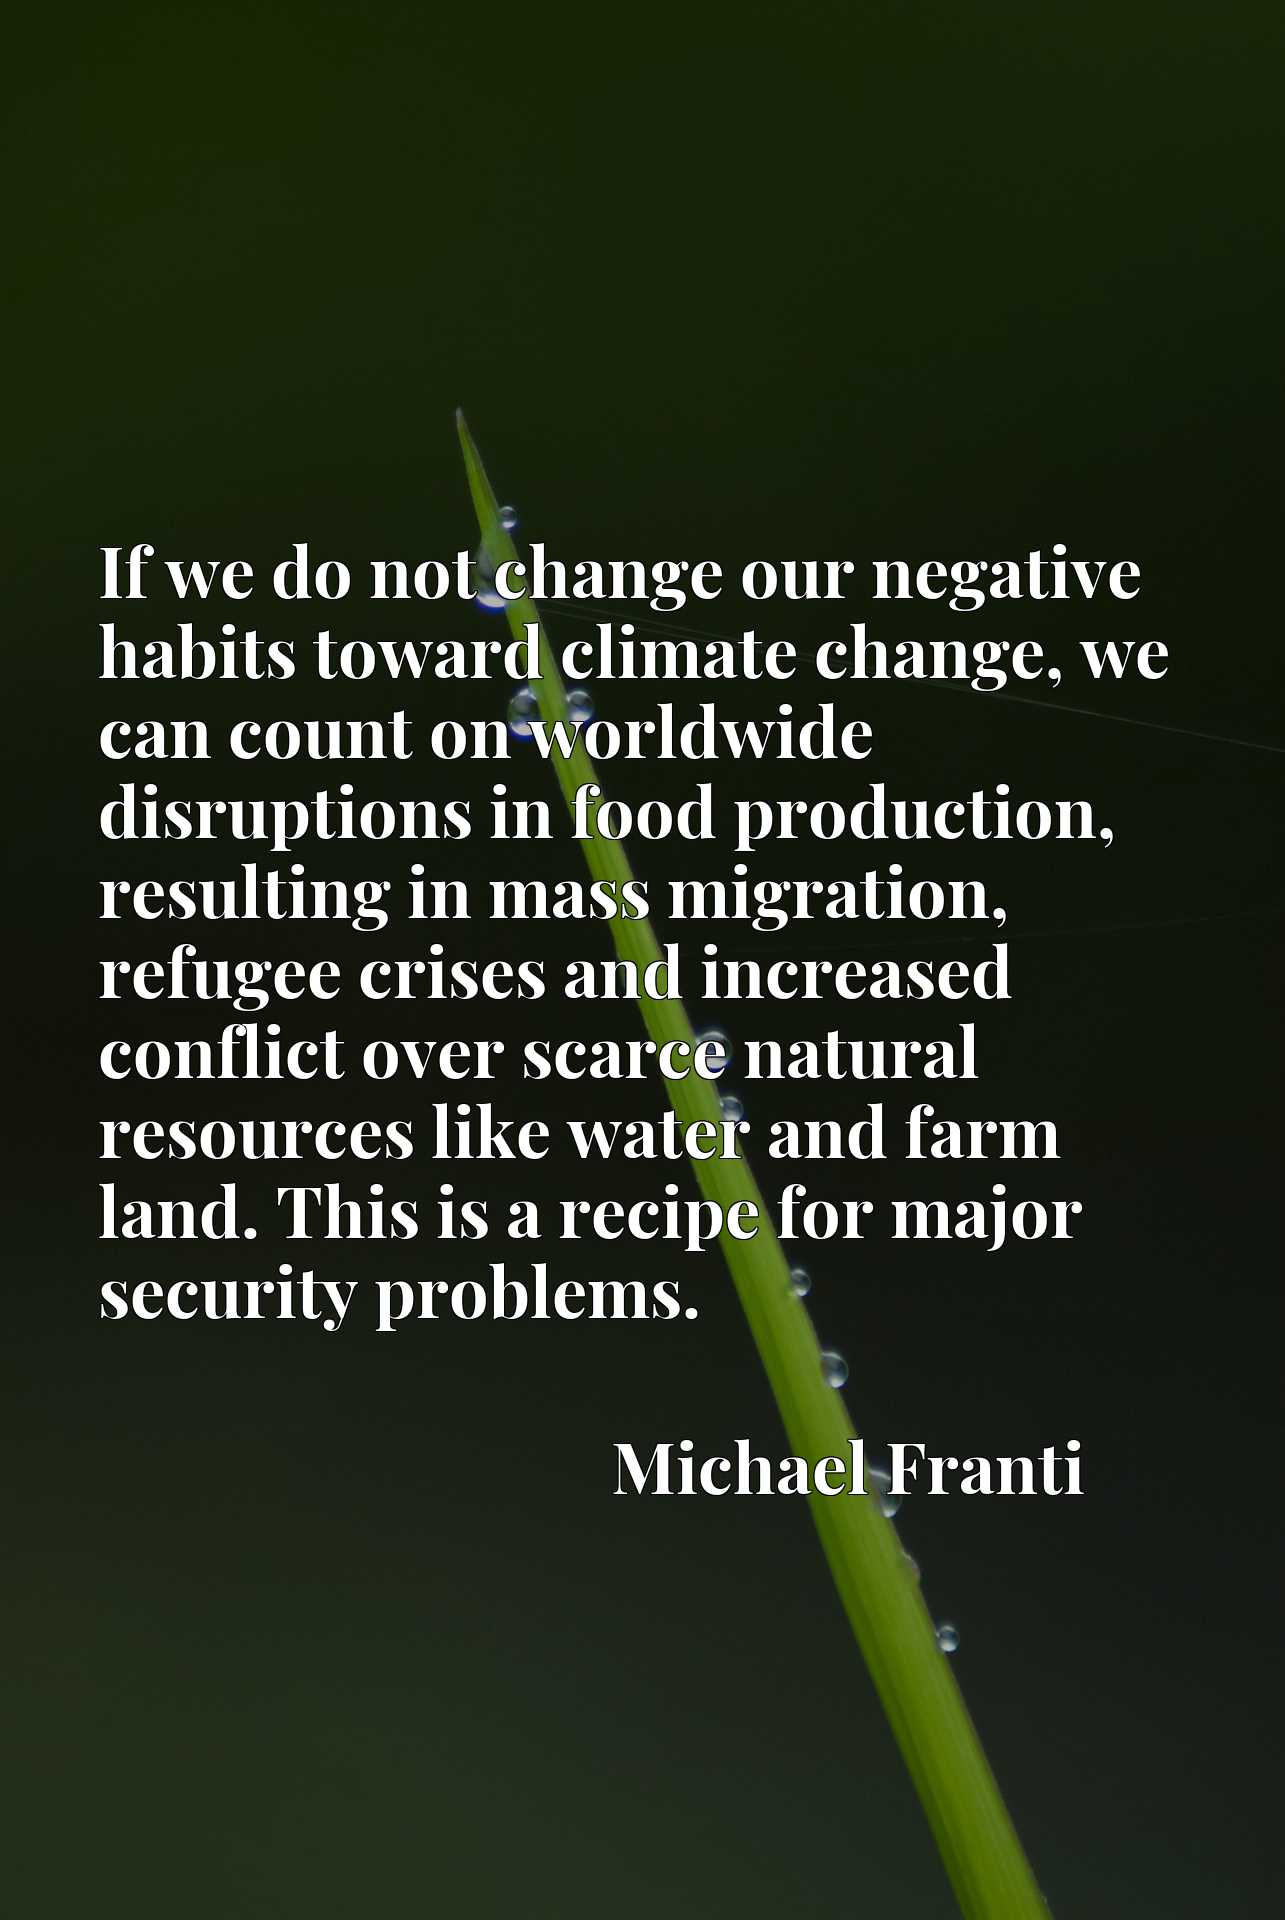 If we do not change our negative habits toward climate change, we can count on worldwide disruptions in food production, resulting in mass migration, refugee crises and increased conflict over scarce natural resources like water and farm land. This is a recipe for major security problems.